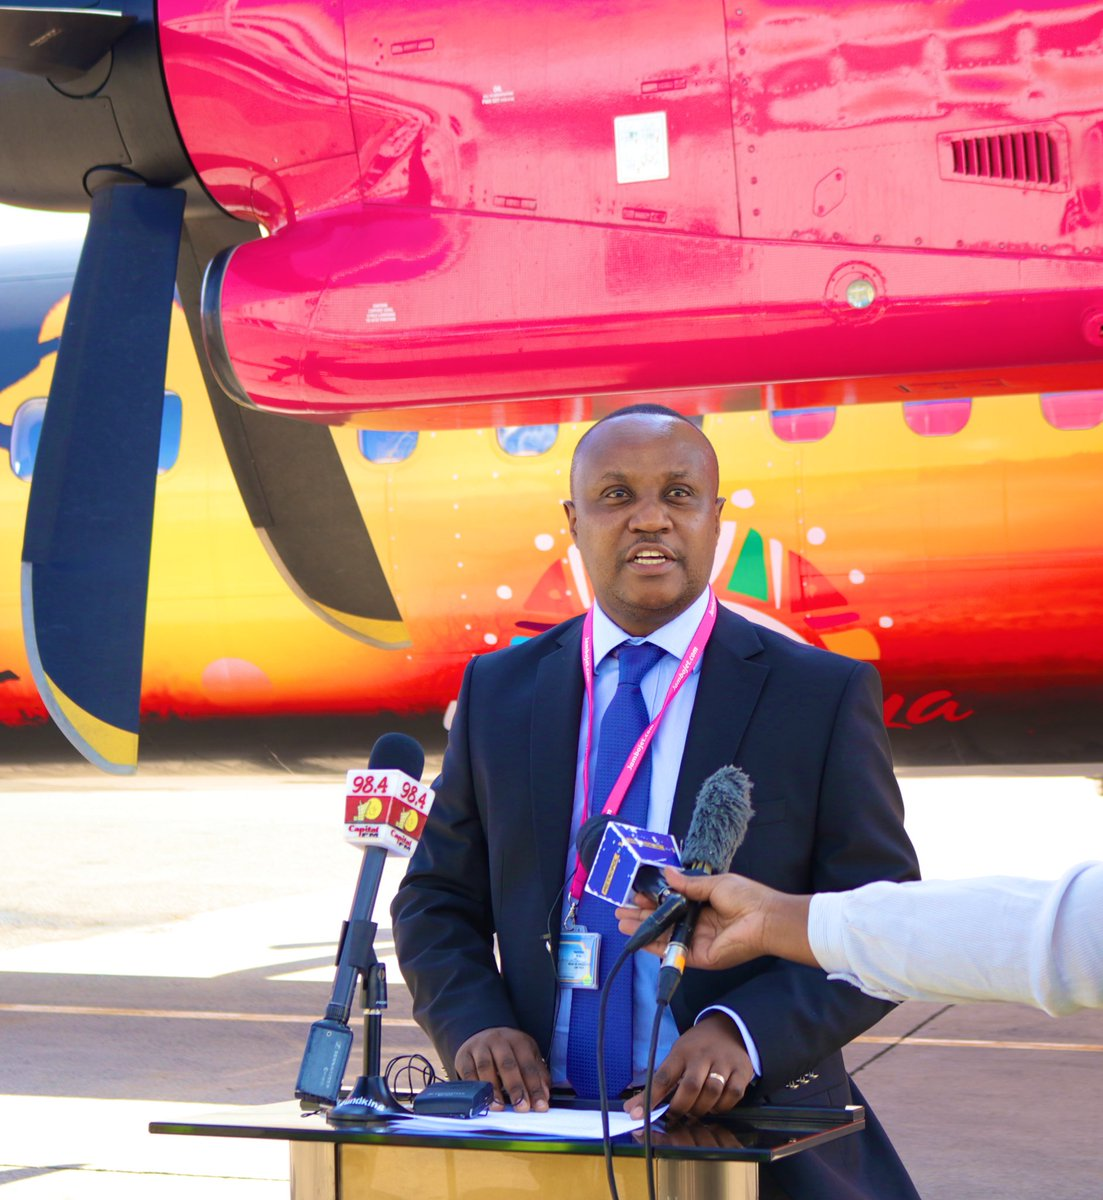 'In September 2020, we launched the #NowTravelReady campaign to encourage domestic tourism as part of post COVID-19 recovery. This partnership with KTB will further drive this conversation in a bid to revive the sector.' - Jambojet Head of operations, Capt. Michael Kwinga